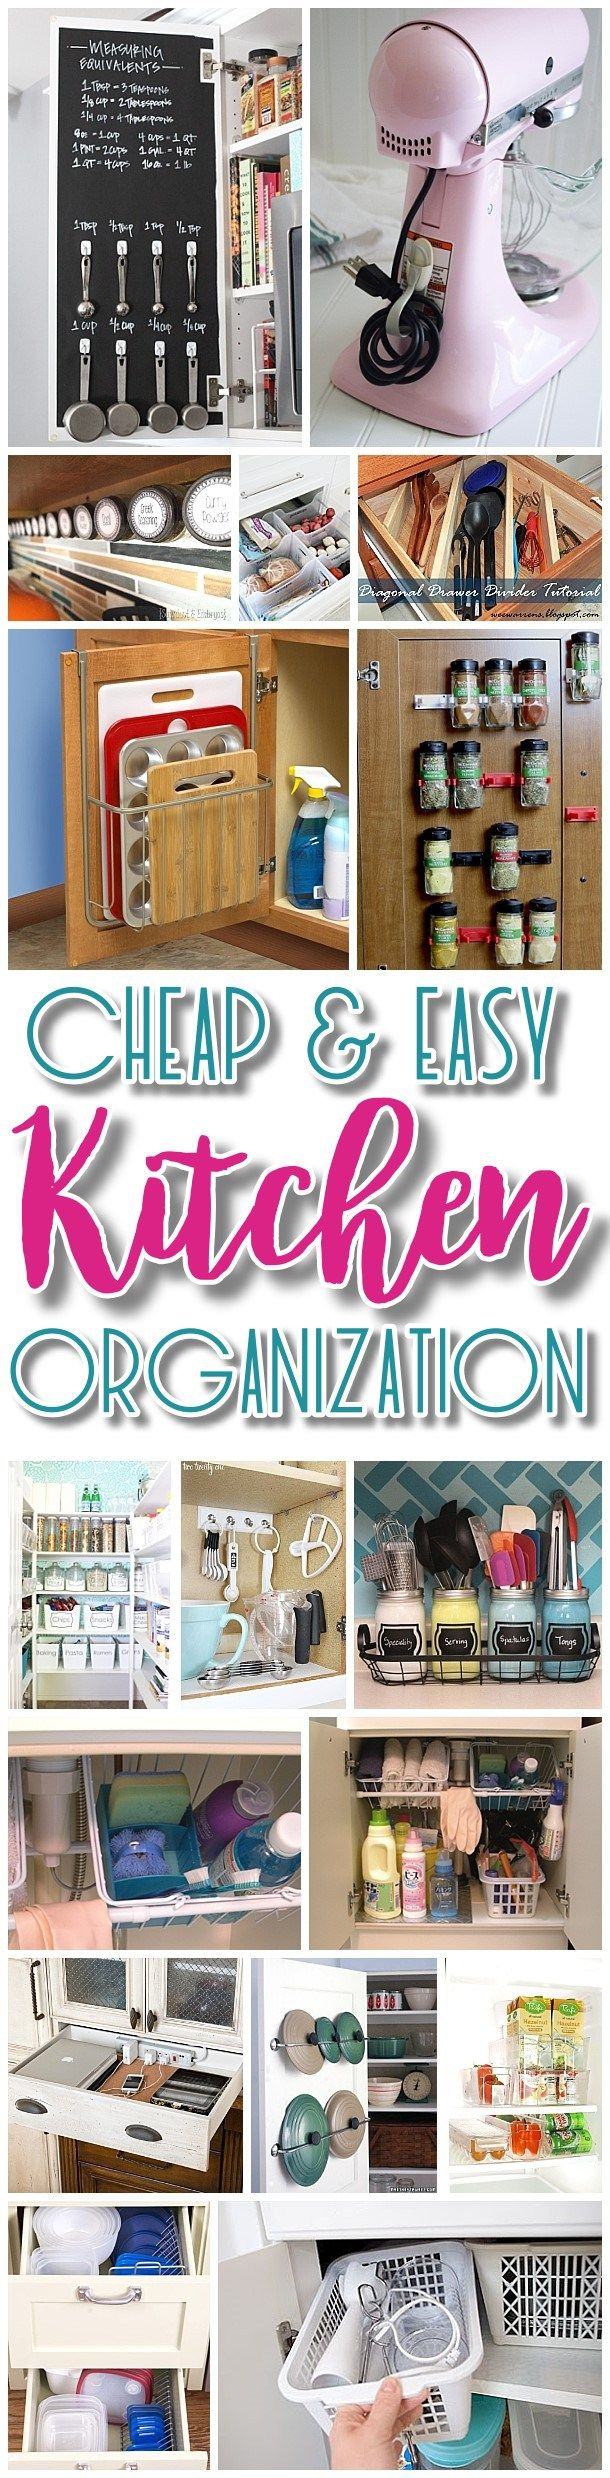 Ideas for kitchen organization - Easy Budget Friendly Ways To Organize Your Kitchen Quick Tips Space Saving Tricks Clever Hacks Organizing Ideas